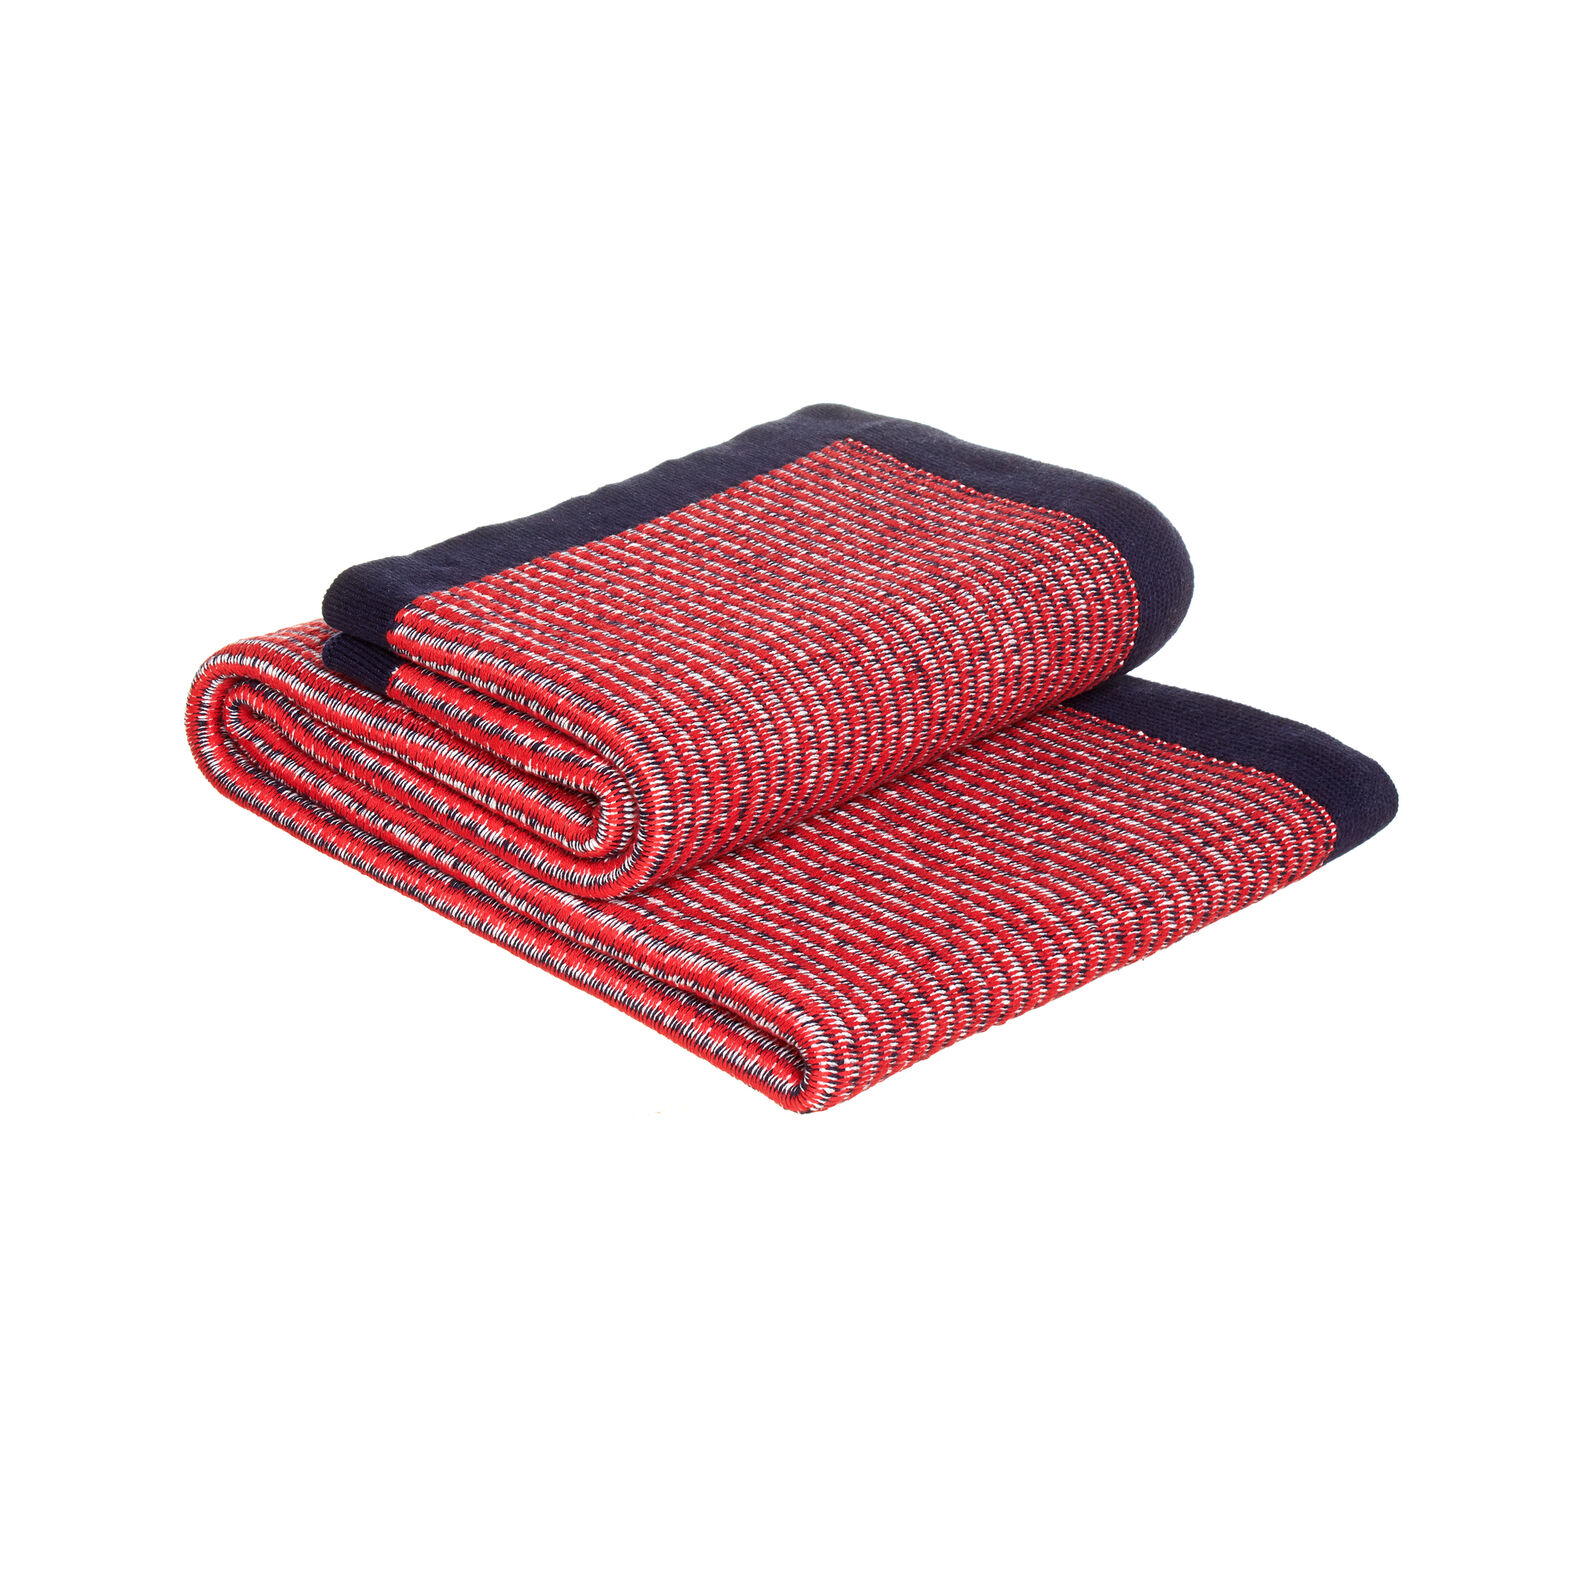 100% knitted cotton throw with trim